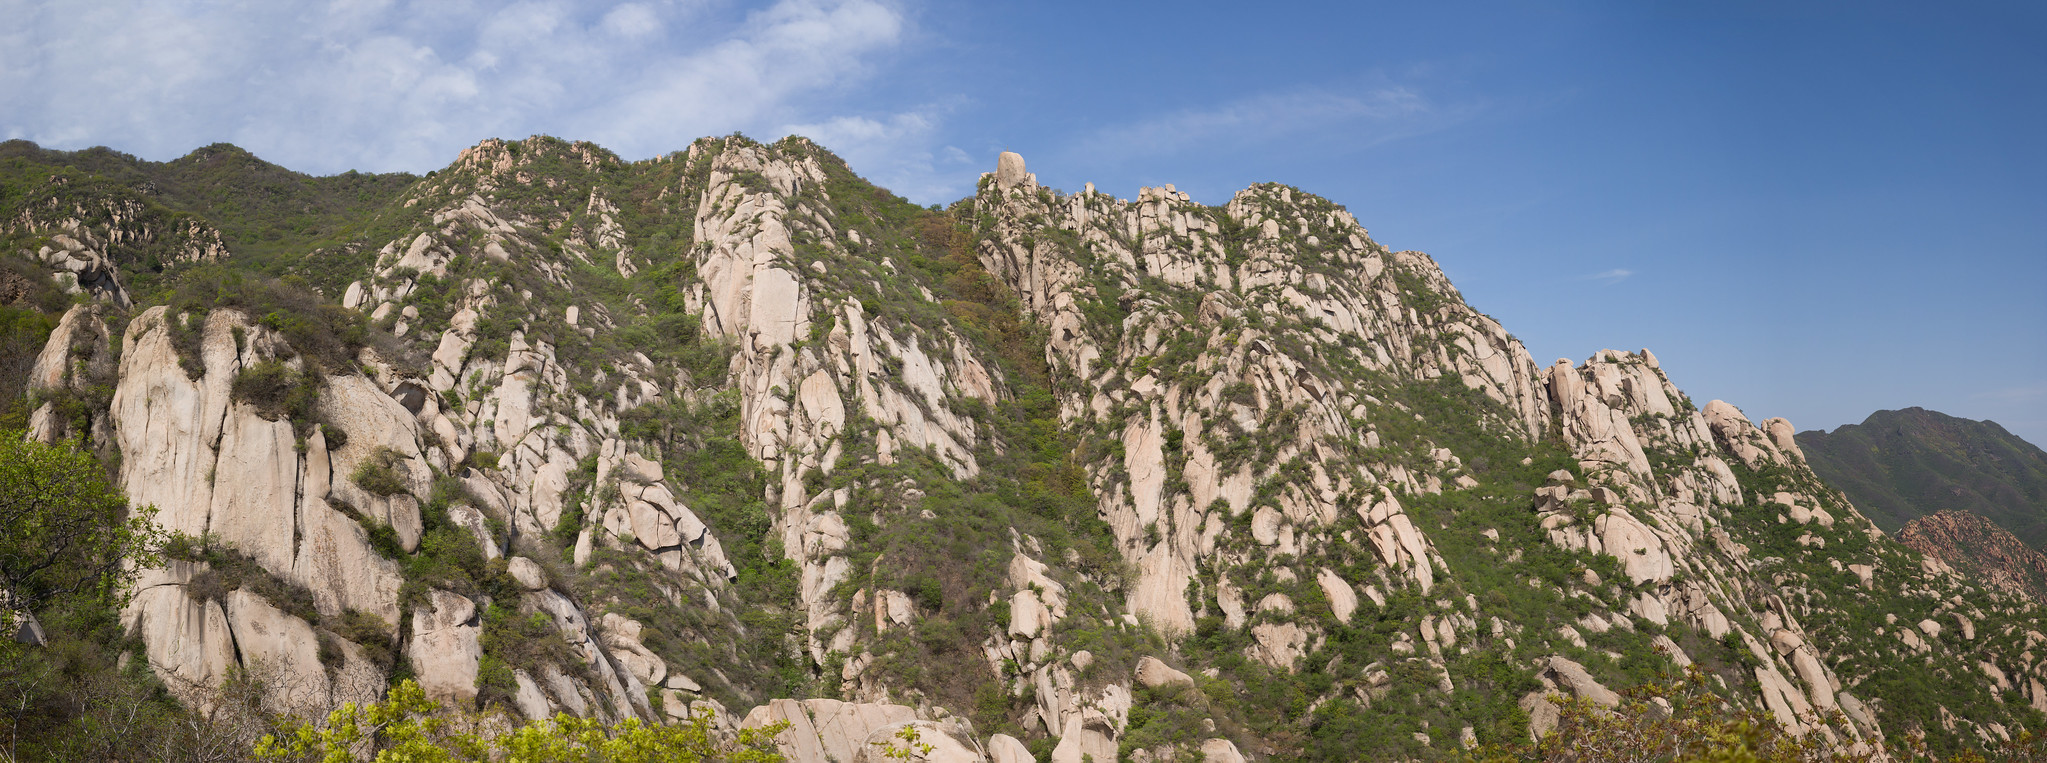 fenghuangling_Pano1